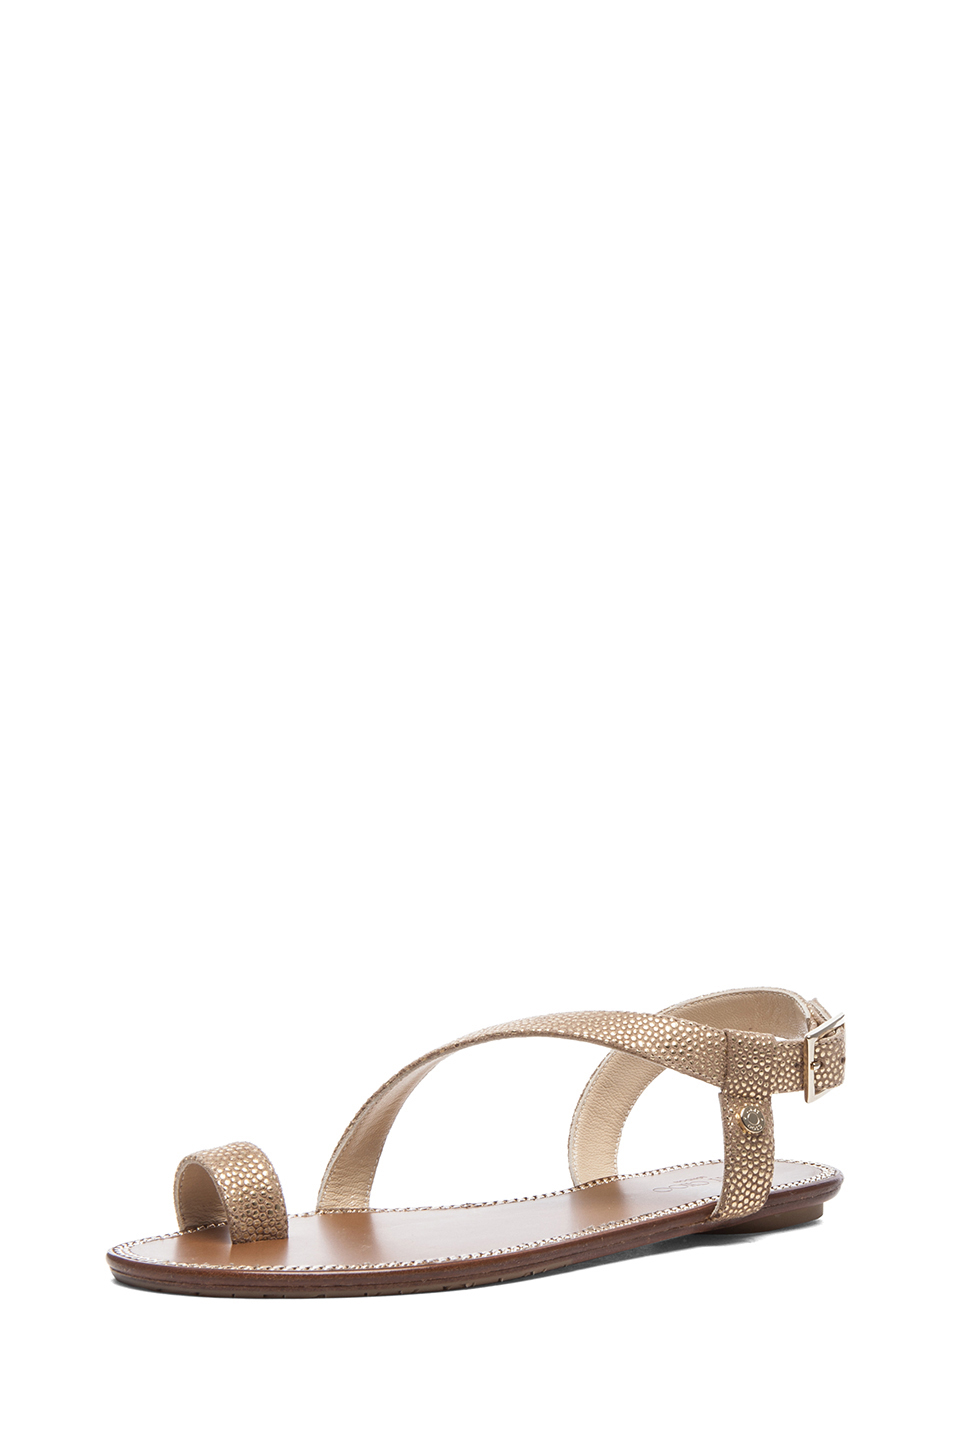 Jimmy Choo|Neru Sandals in Gold